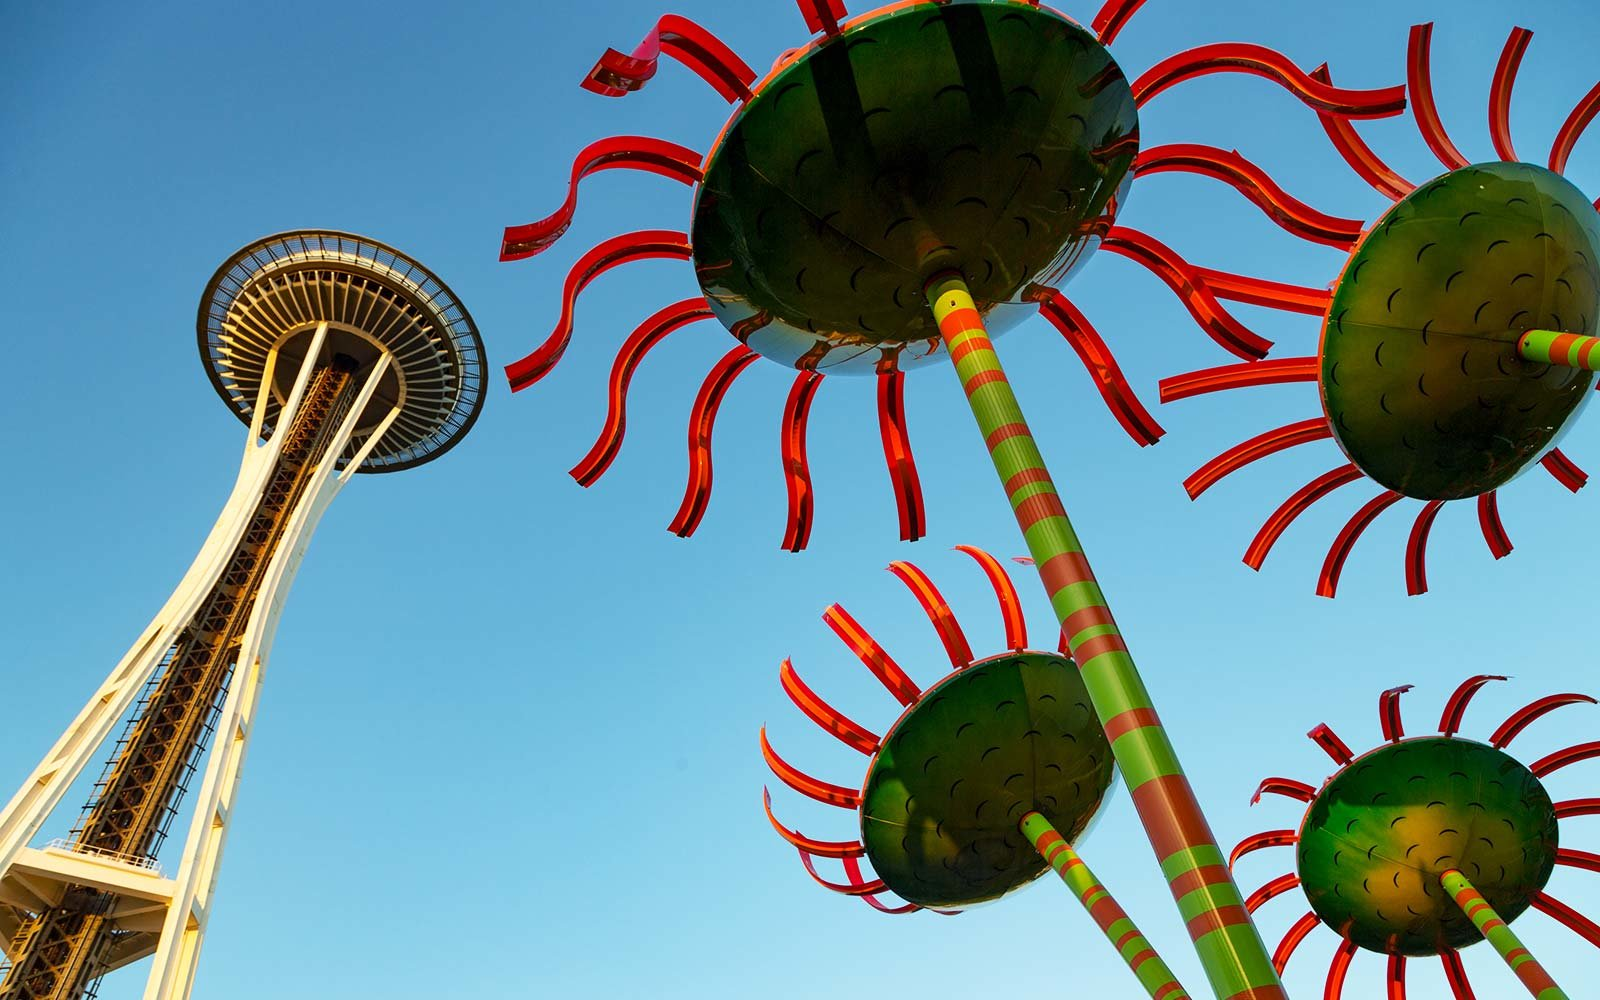 'Sonic Bloom' – Space Needle Tower, Seattle